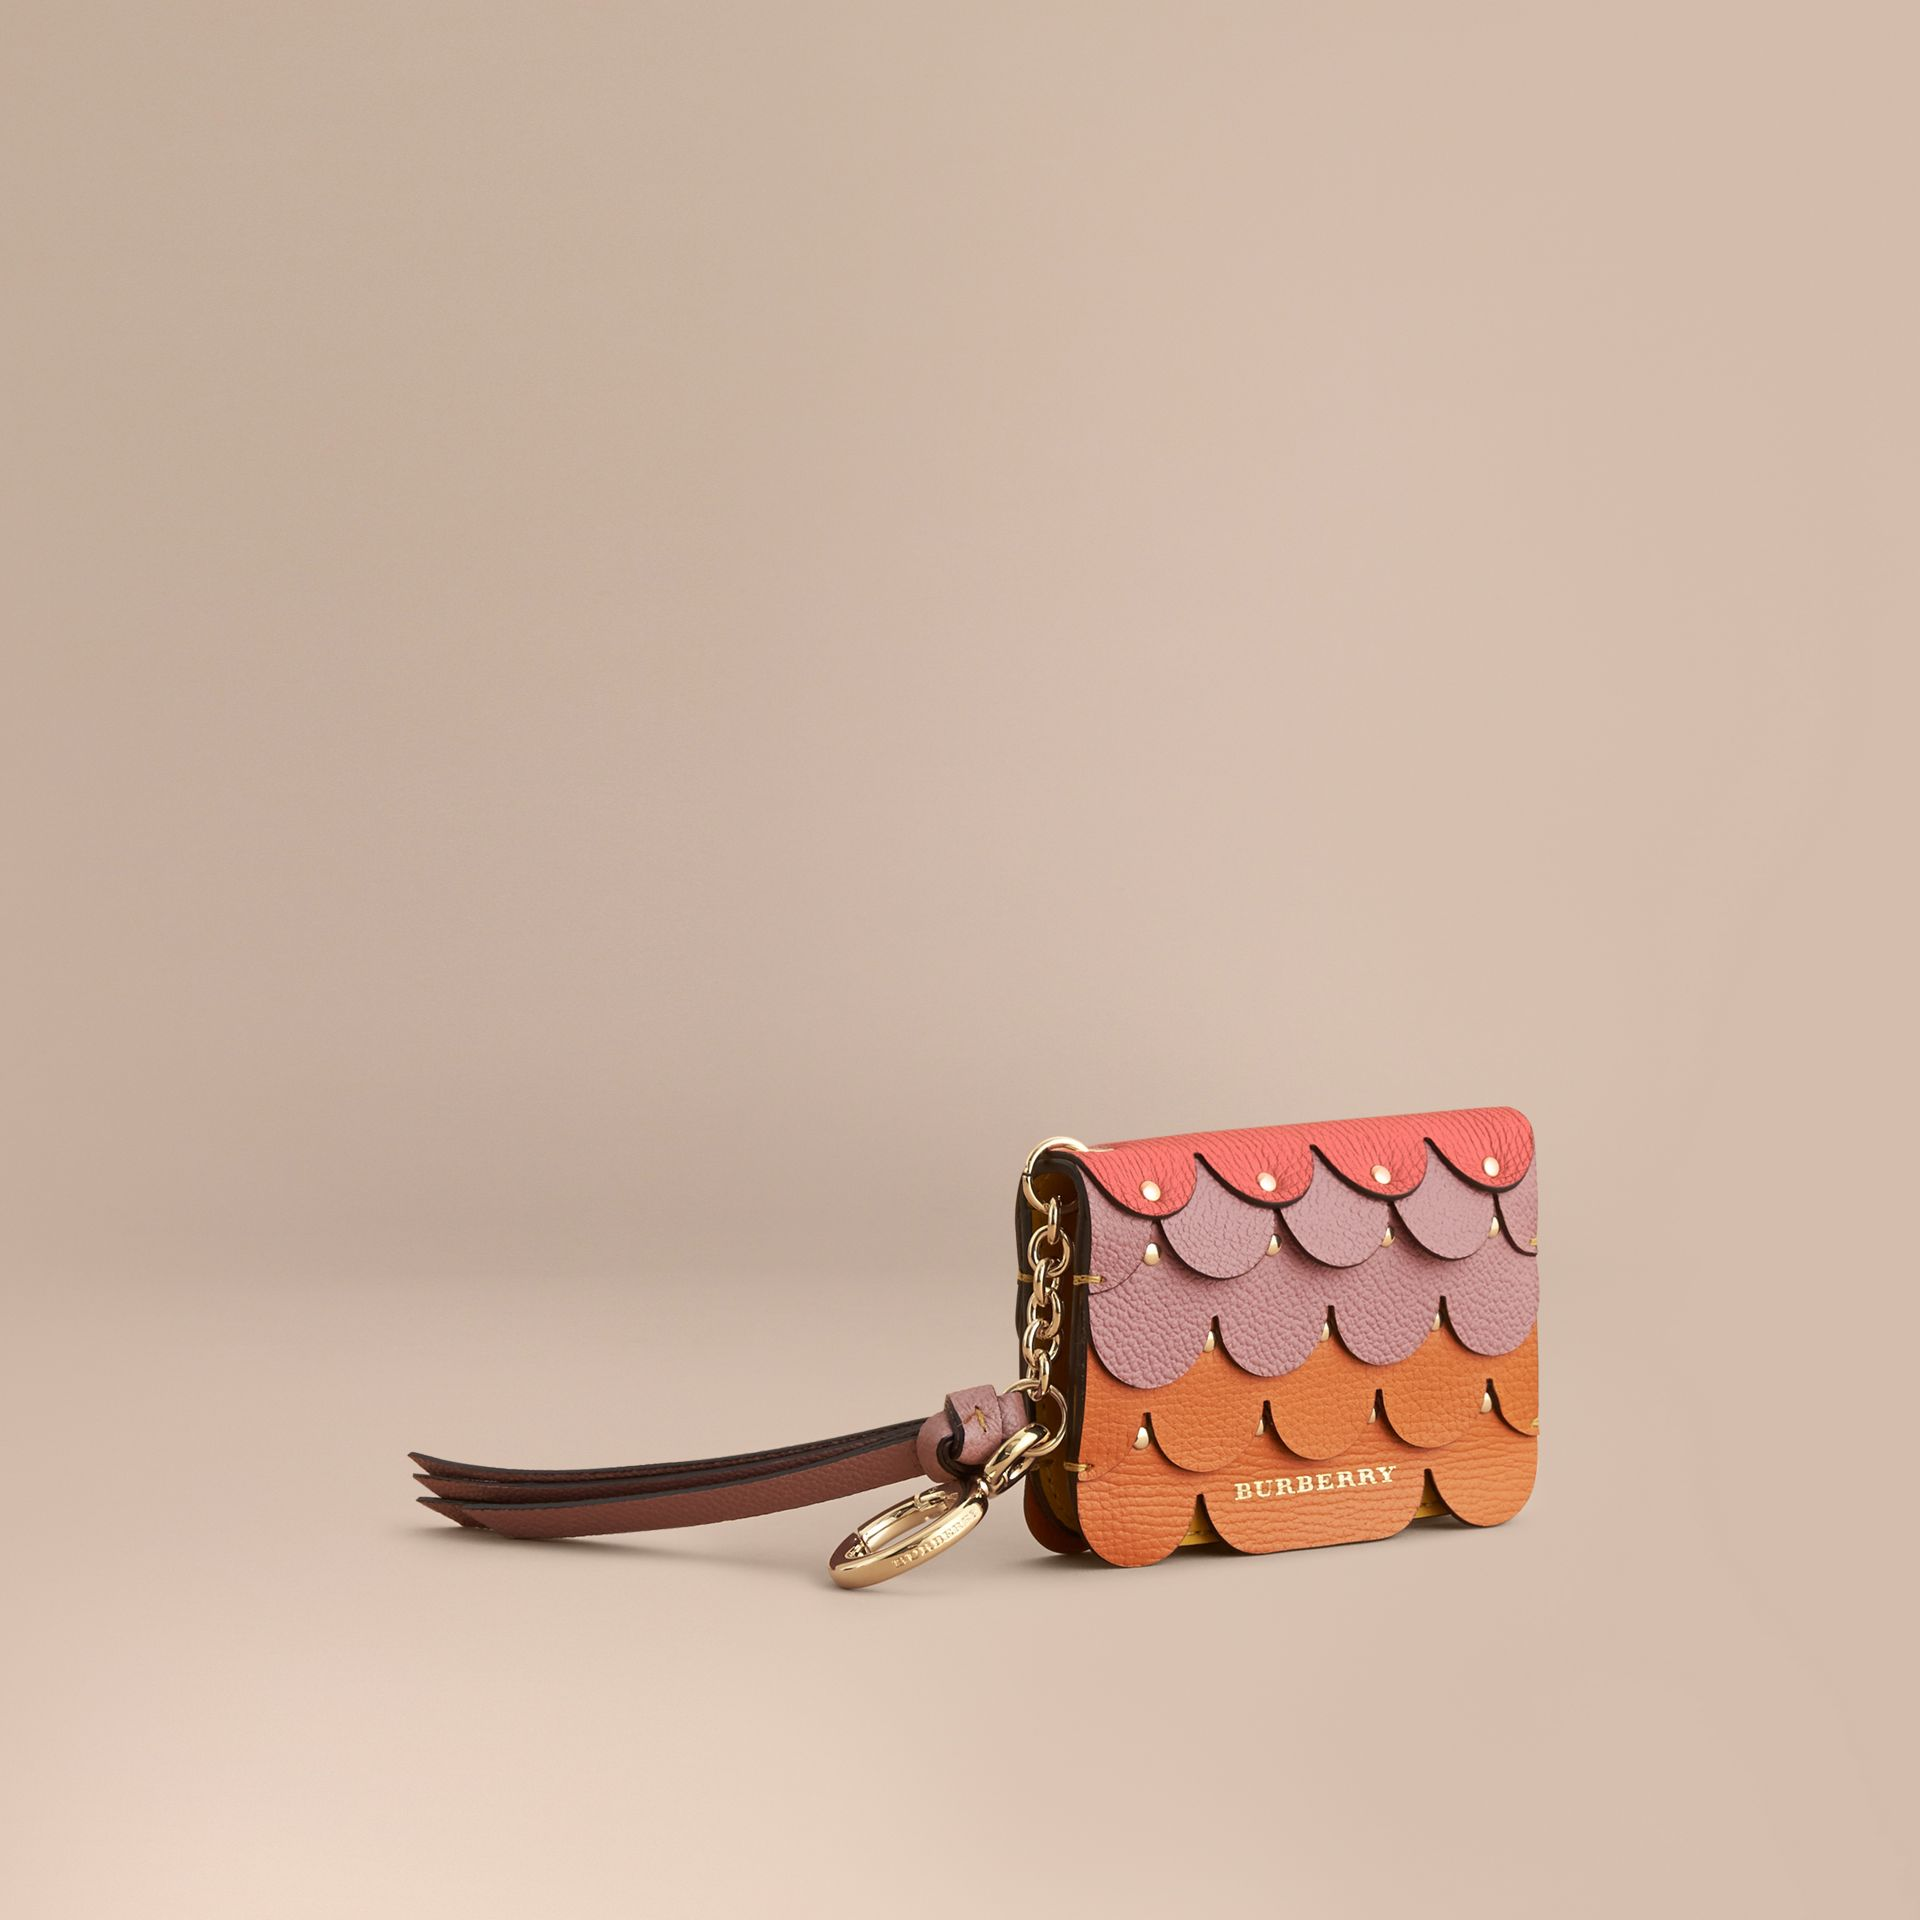 Scalloped Leather Card Case in Bright Straw - Women | Burberry Australia - gallery image 1